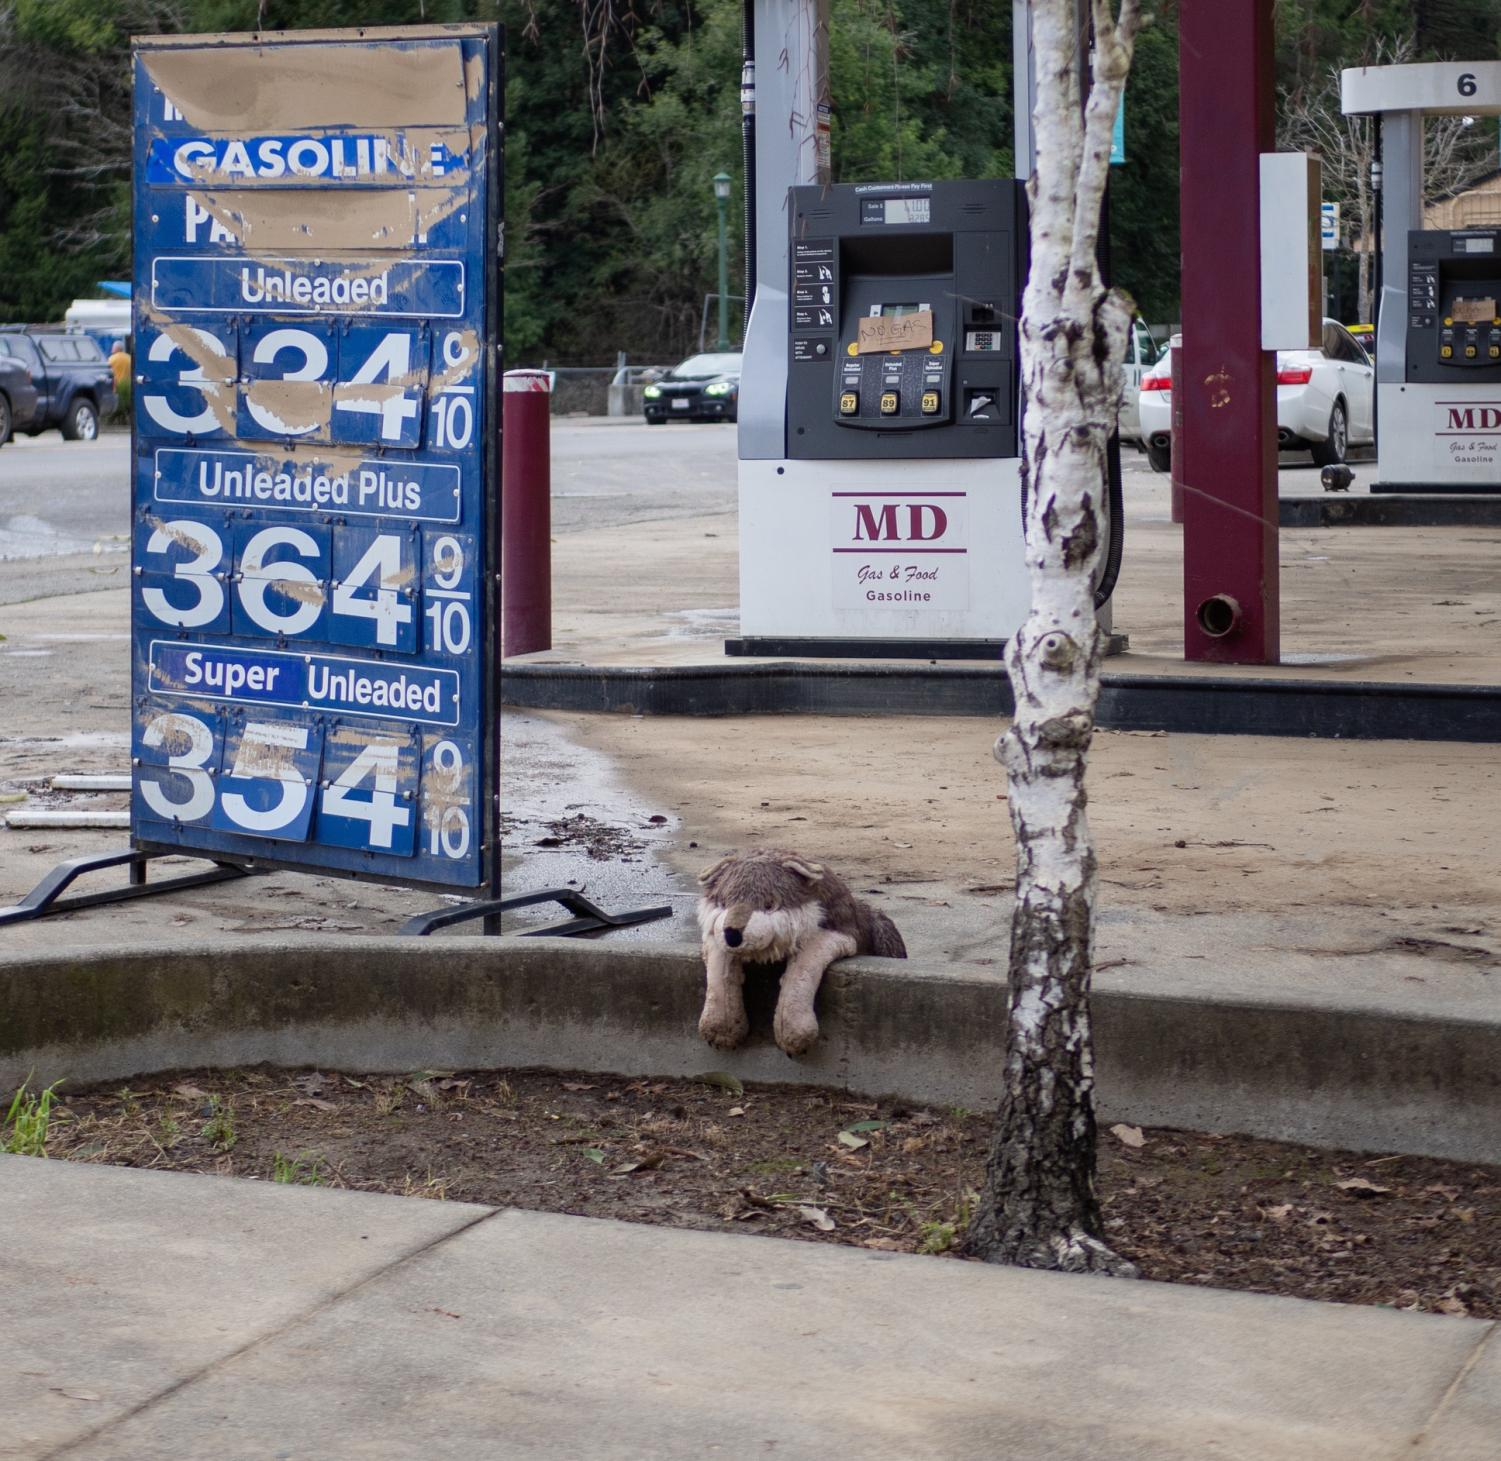 A forgotten stuffed animal sits alone at a gas station during floods that crippled Guernville in February of 2019.